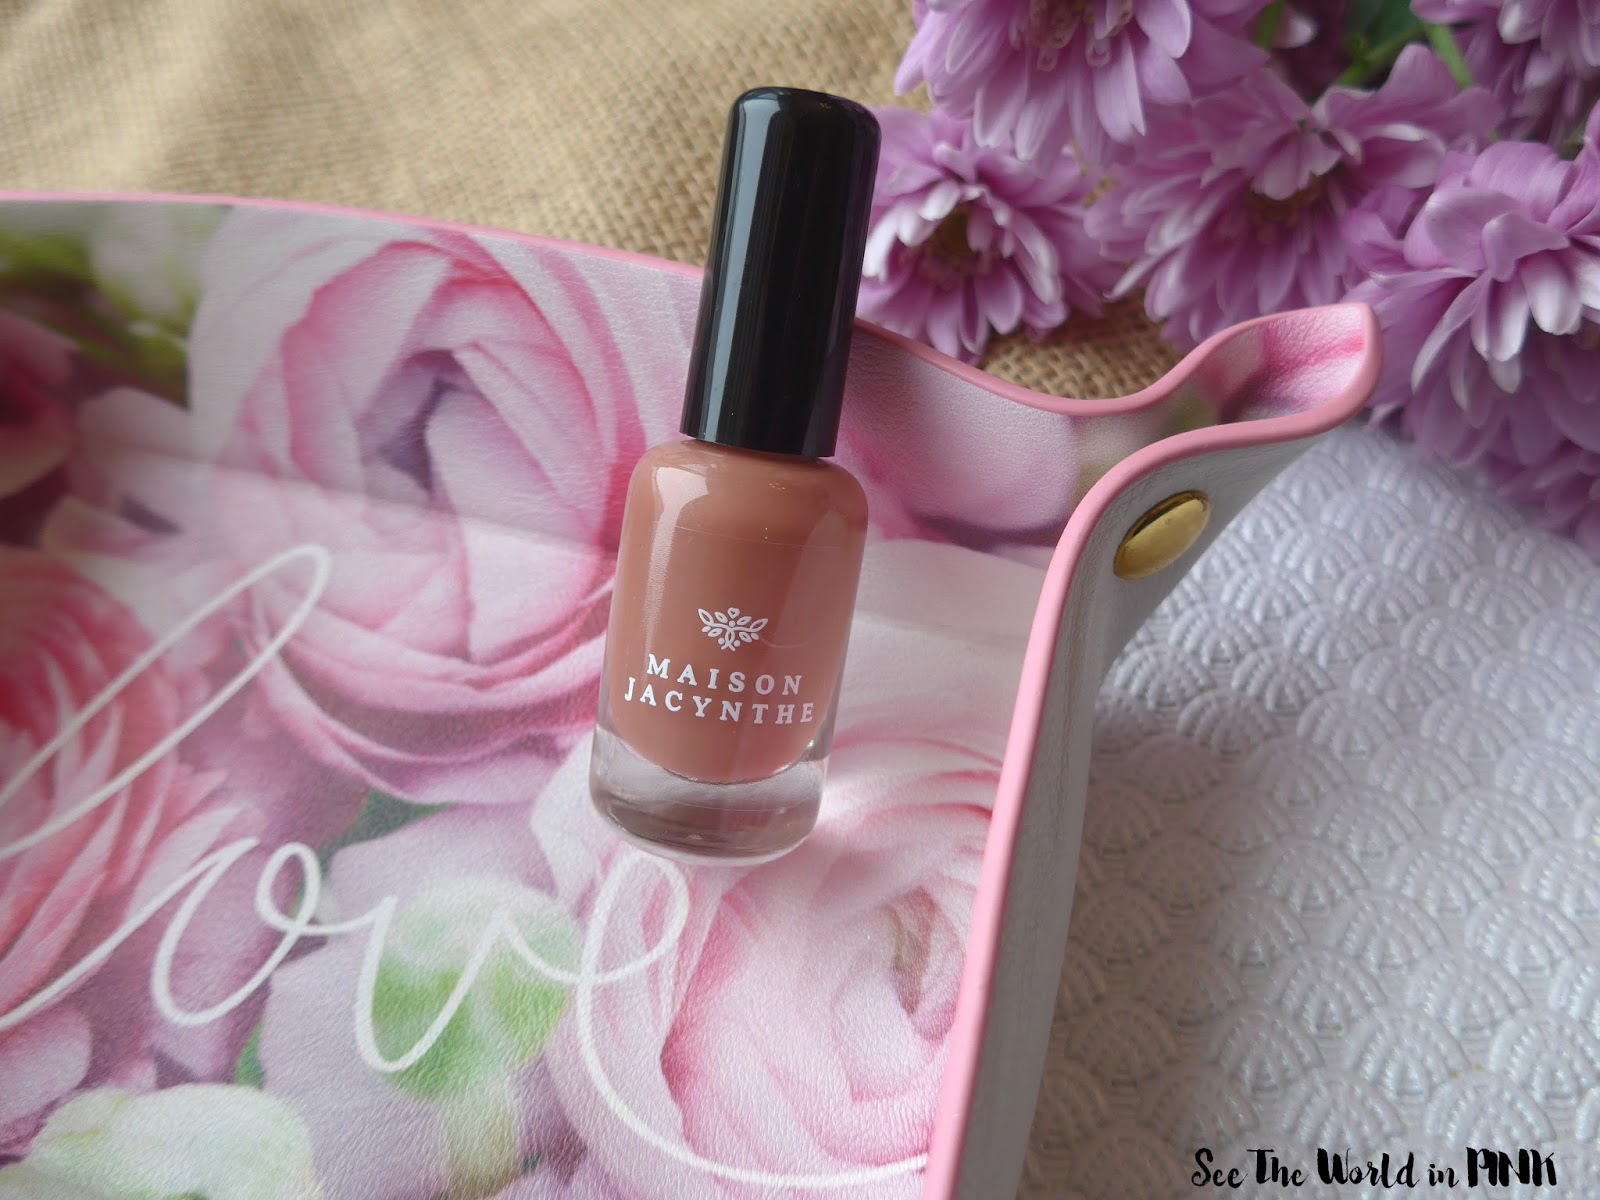 Manicure Tuesday - Maison Jacynthe Nail Polish in Amalfi